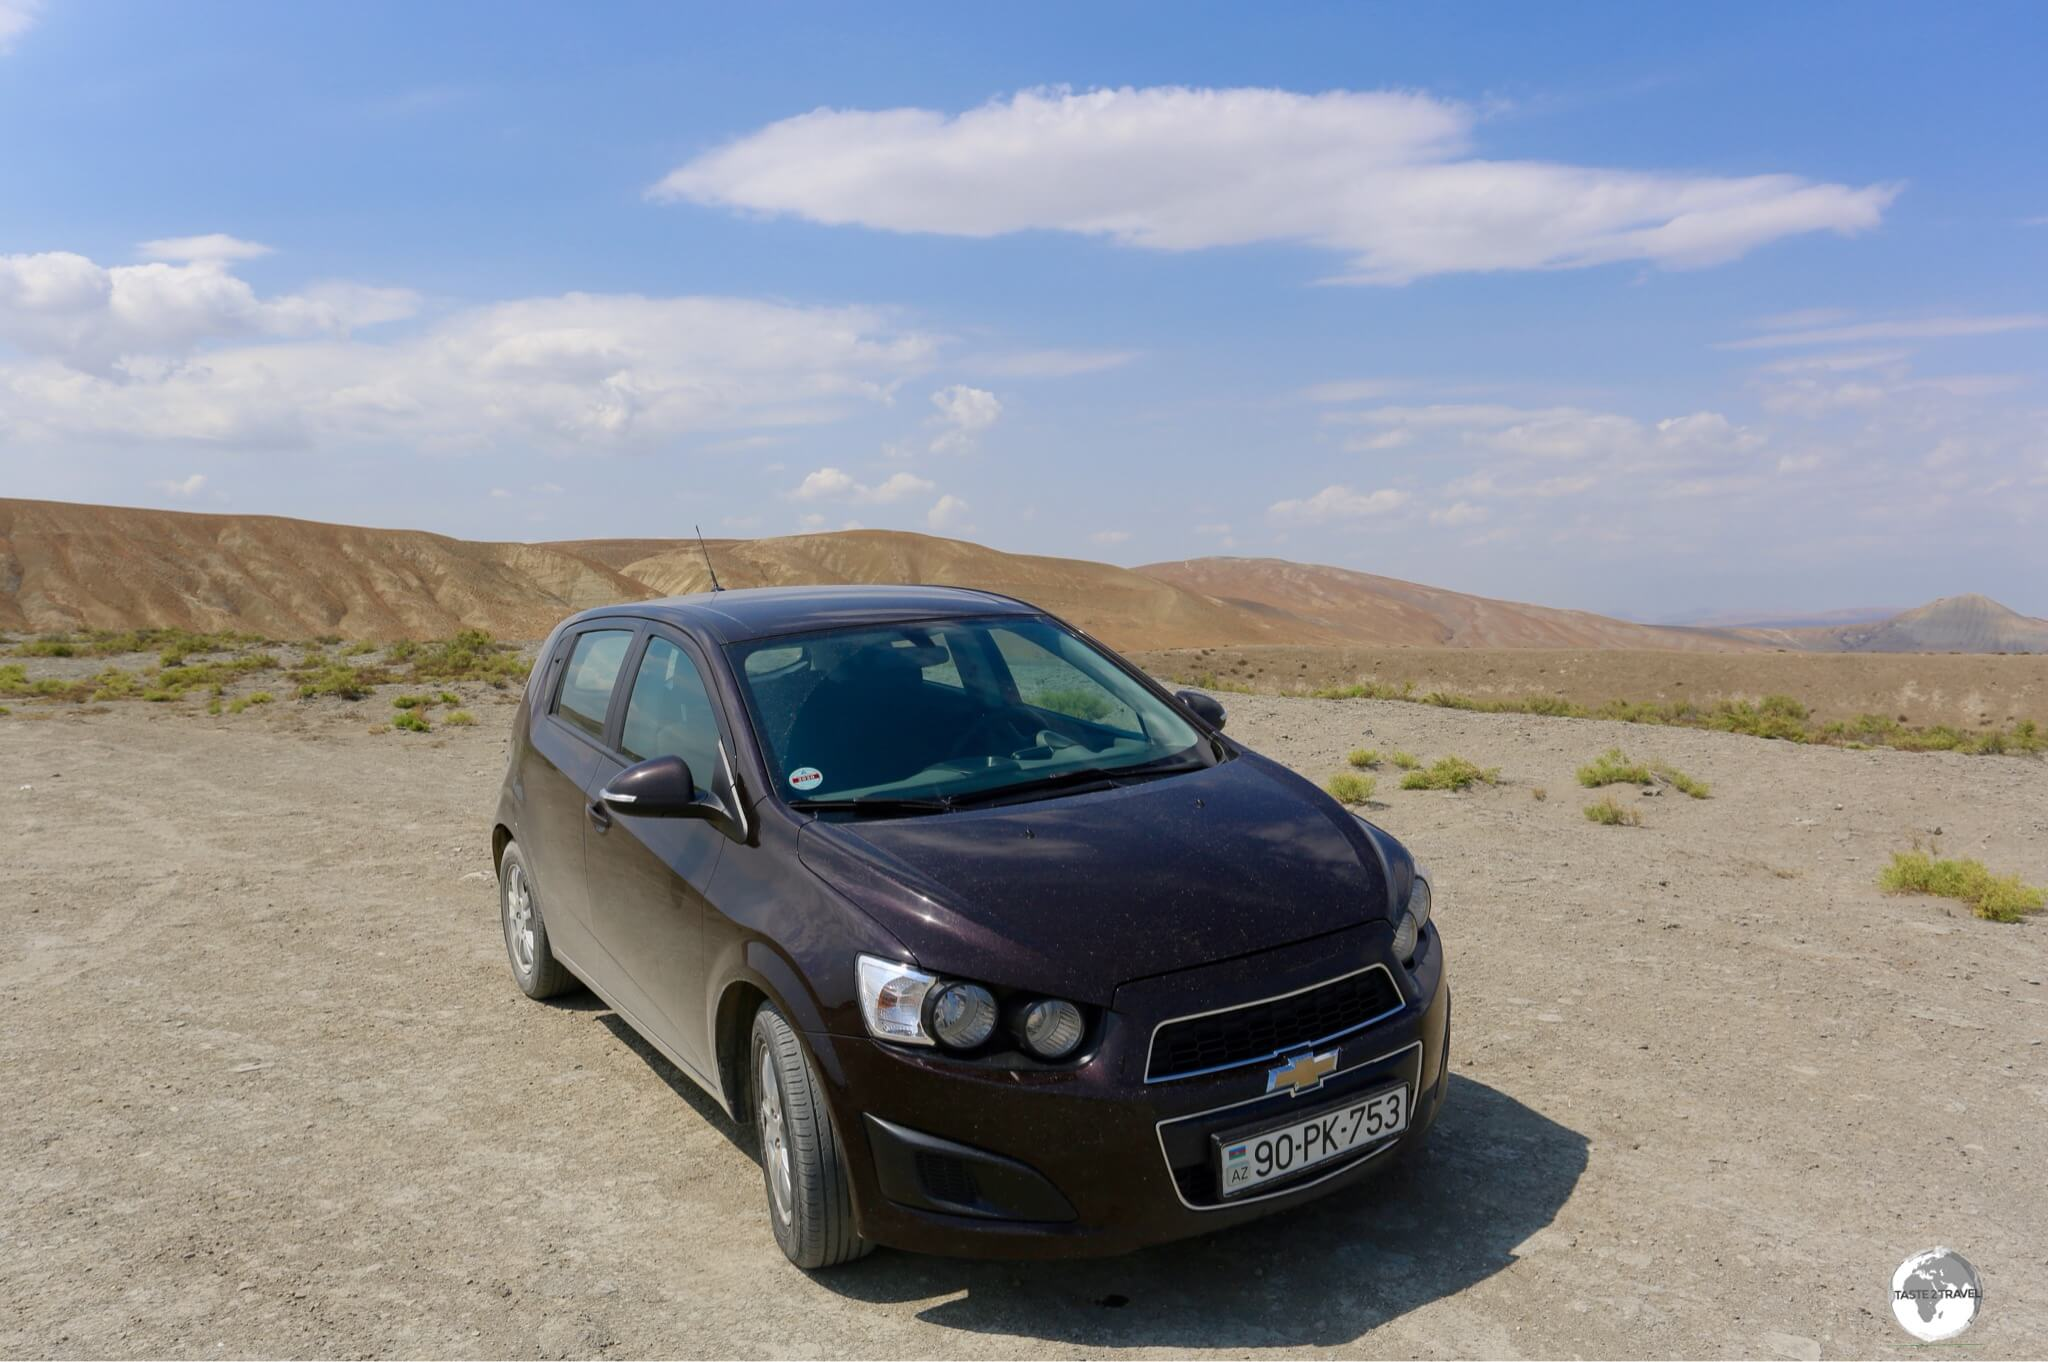 Off-roading in my rental car in Azerbaijan.